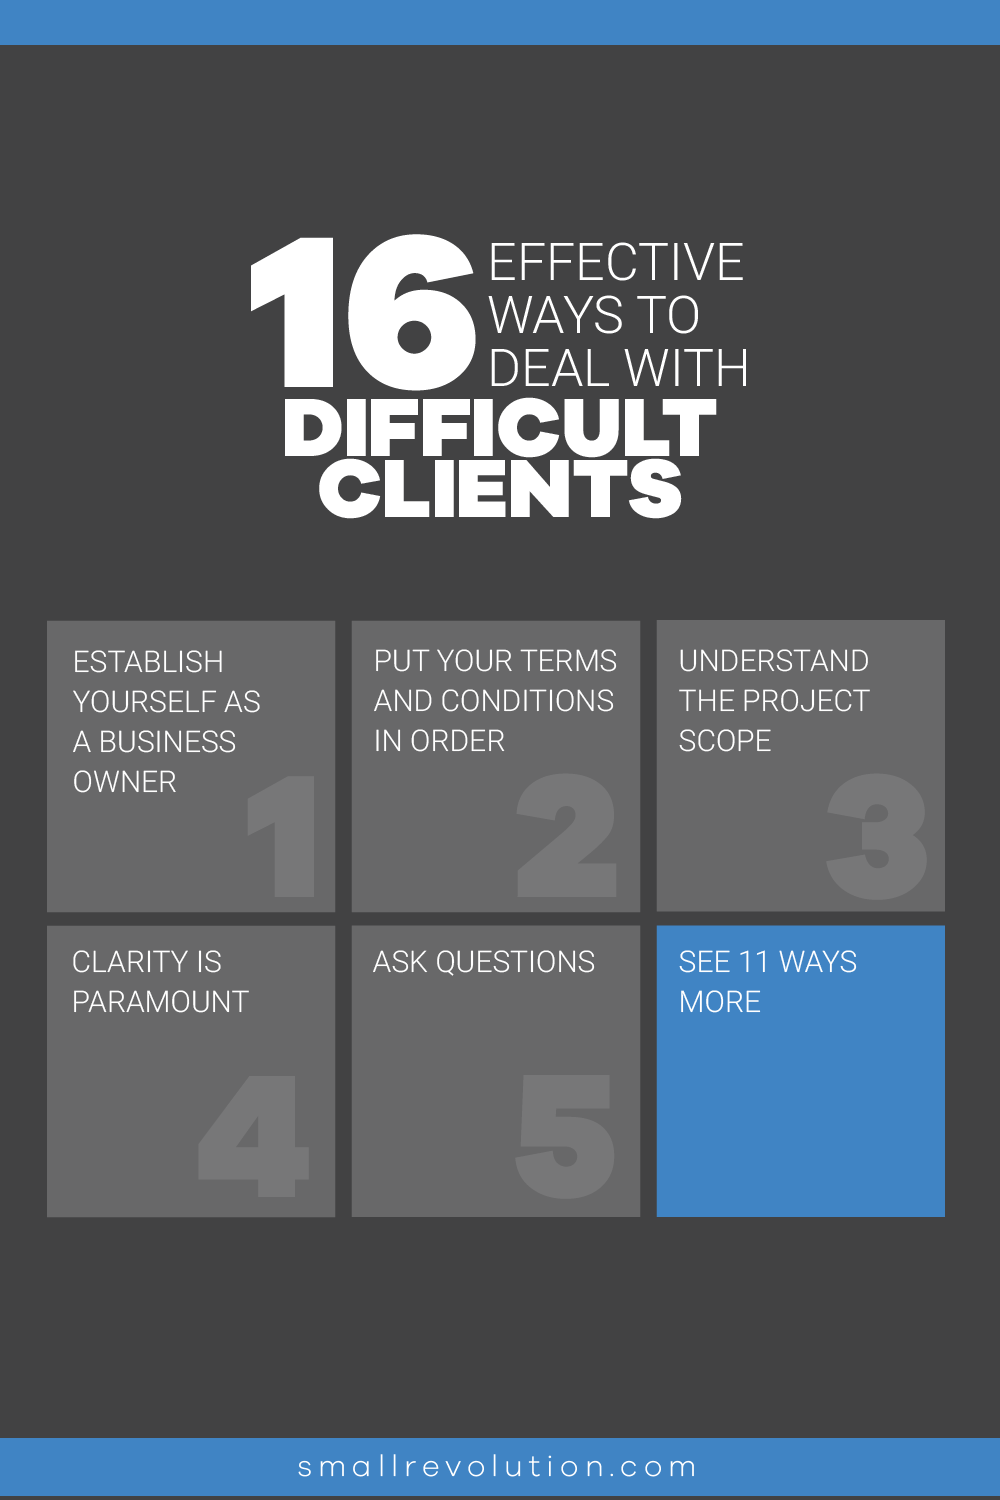 16 effective ways to deal with difficult clients